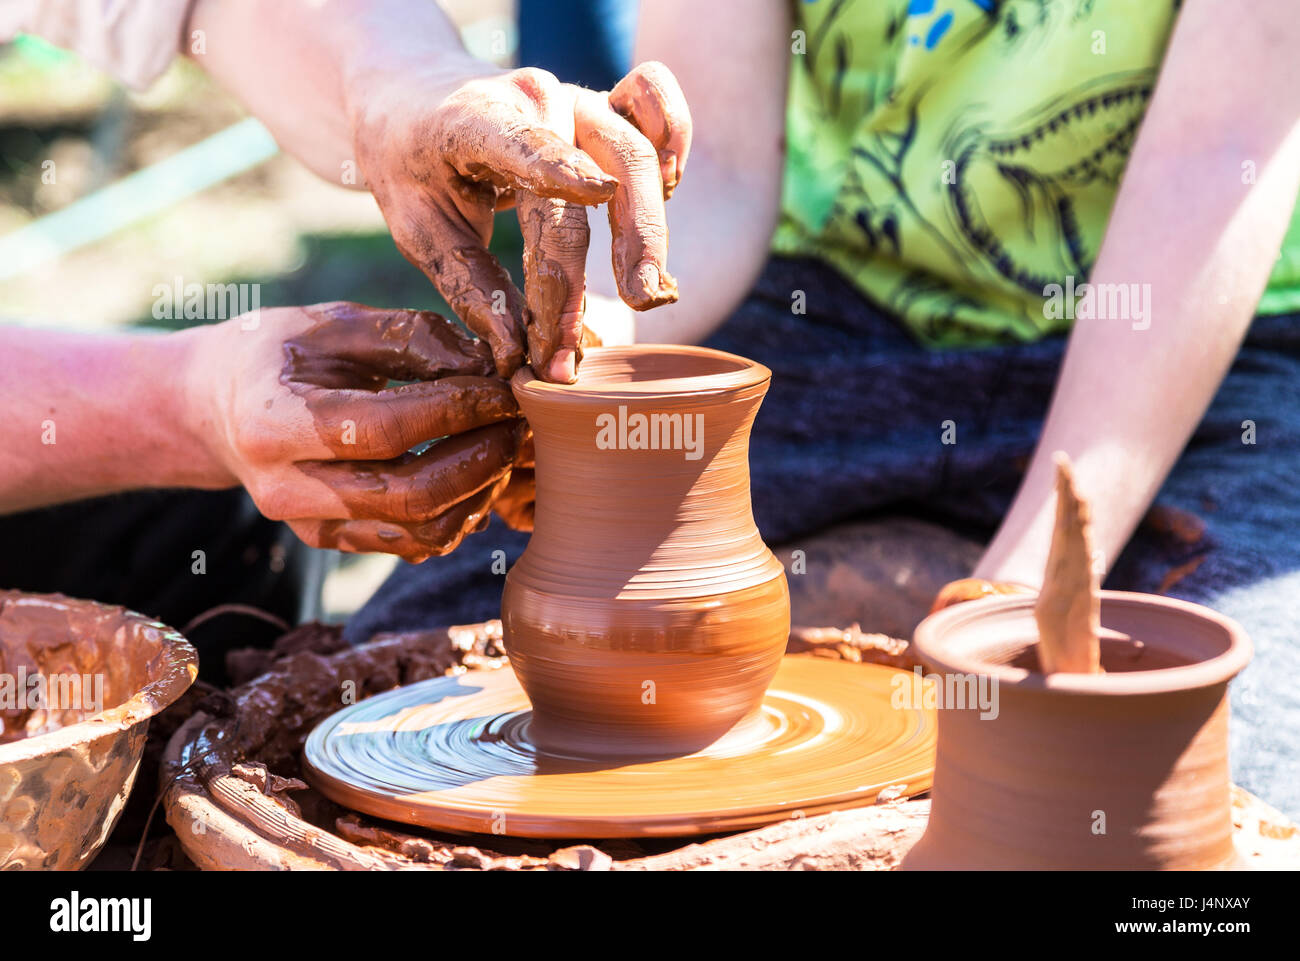 Potter's hands guiding a child hands to help him to work with the ceramic wheel. Work on the potter's wheel - Stock Image